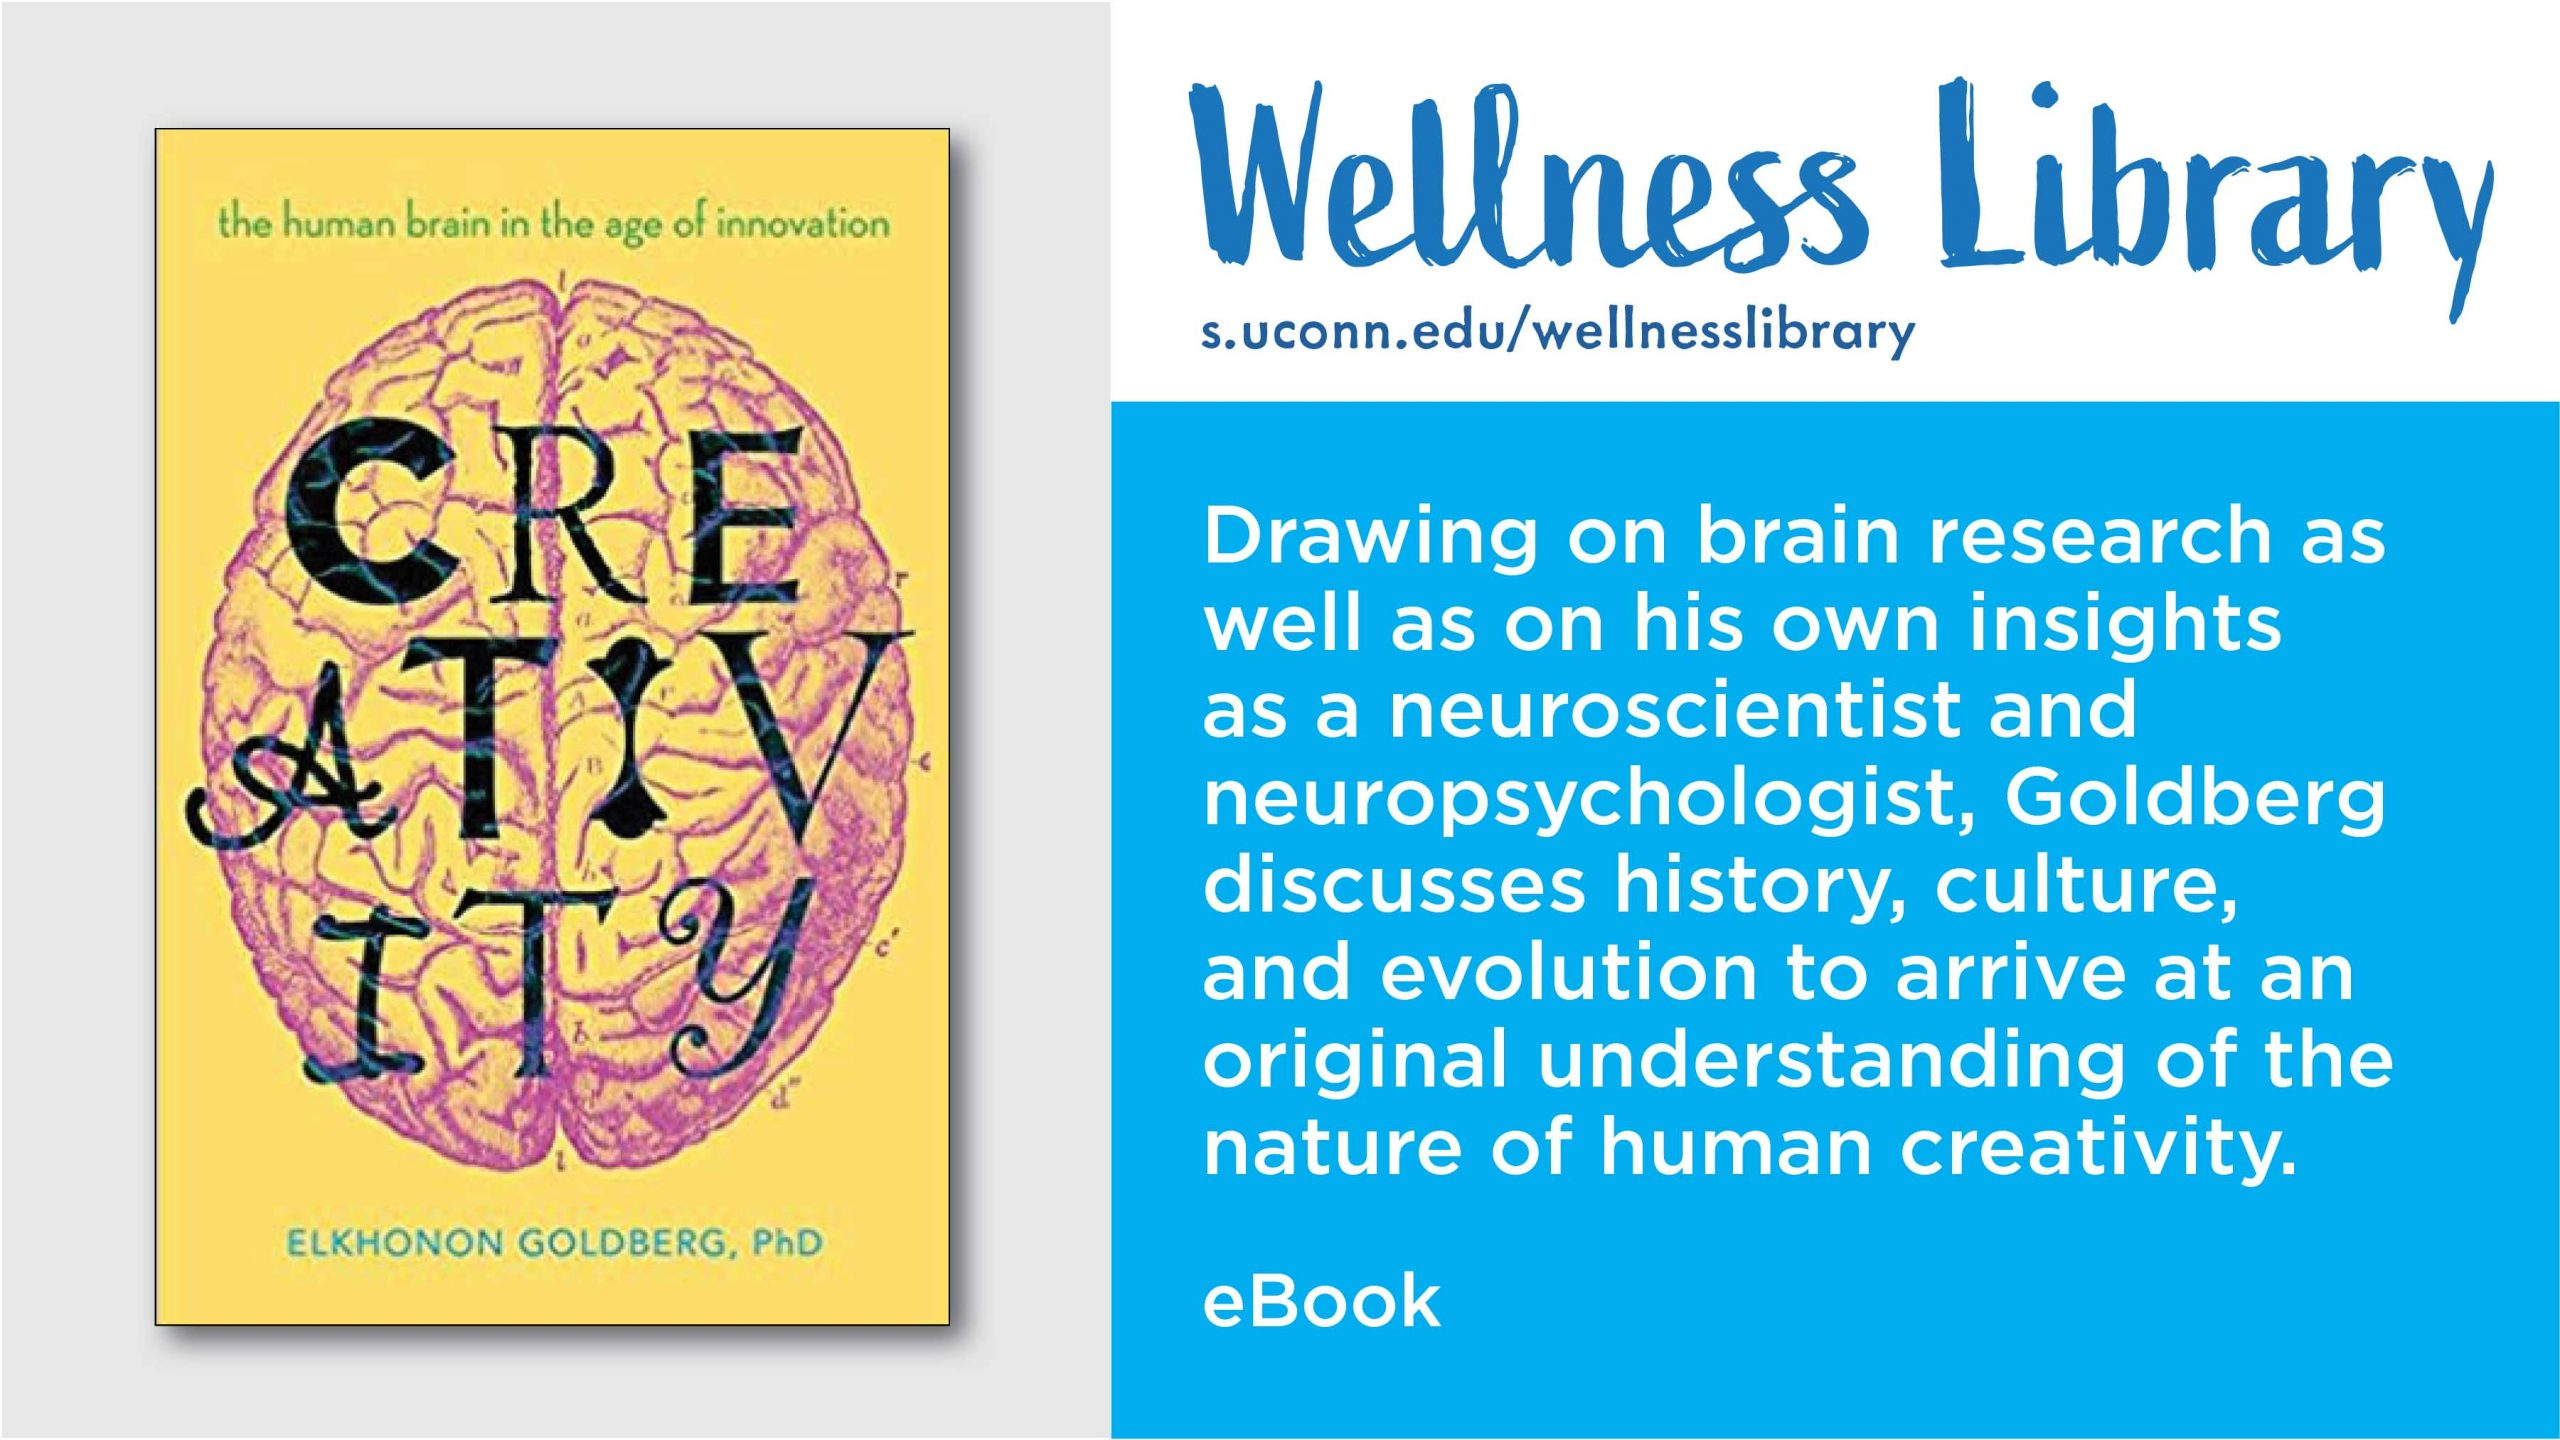 Wellness Library. Drawing on brain research as well as on his own insights as a neuroscientist and neuropsychologist, Goldberg discusses history, culture, and evolution to arrive at an original understanding of the nature of human creativity. eBook. Image of cover of book, Creativity, the human brain in the age of innovation.